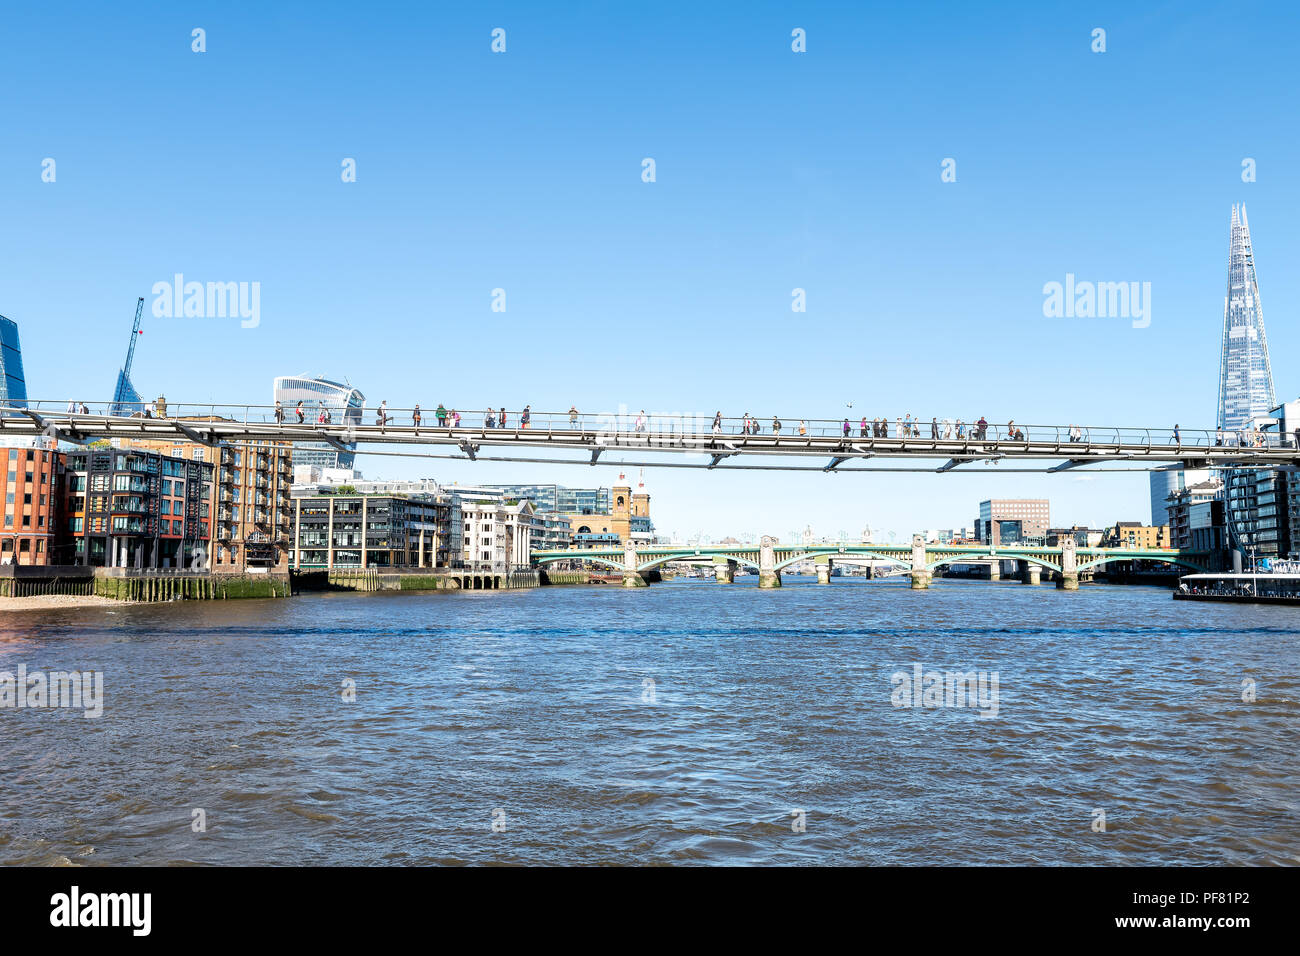 London, UK - June 22, 2018: View from boat on Thames on Millennium Bridge with people, pedestrians walking during sunny day with sunlight, clear blue  Stock Photo